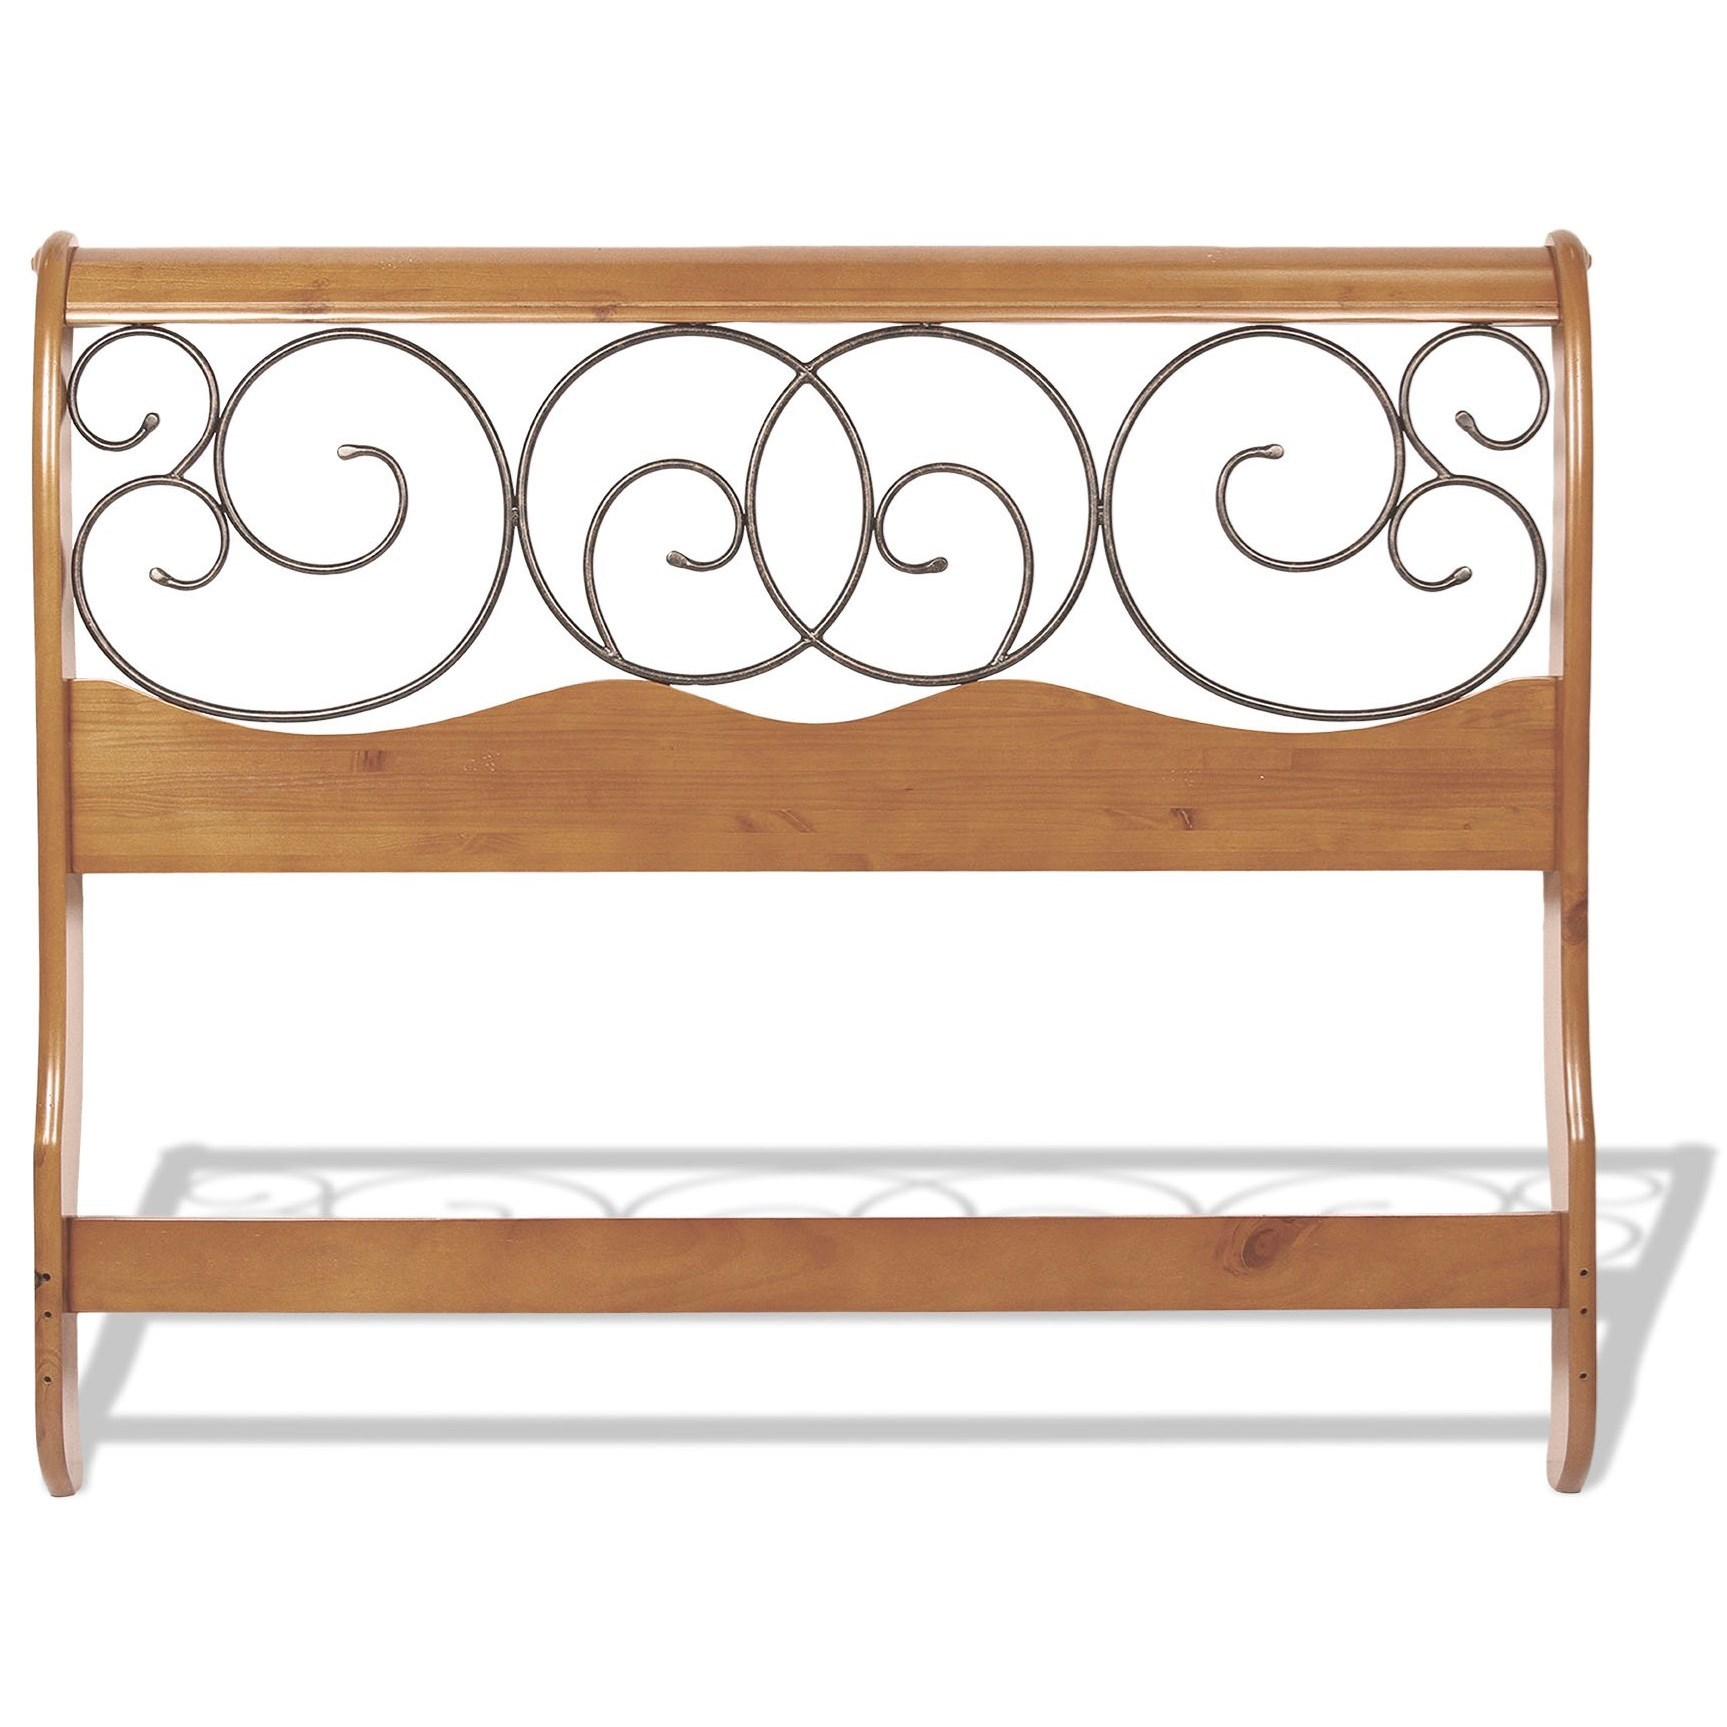 Canopy Style Bed Available For Order In These Wood Colours: Fashion Bed Group Wood And Metal Beds B90D05 Queen Dunhill